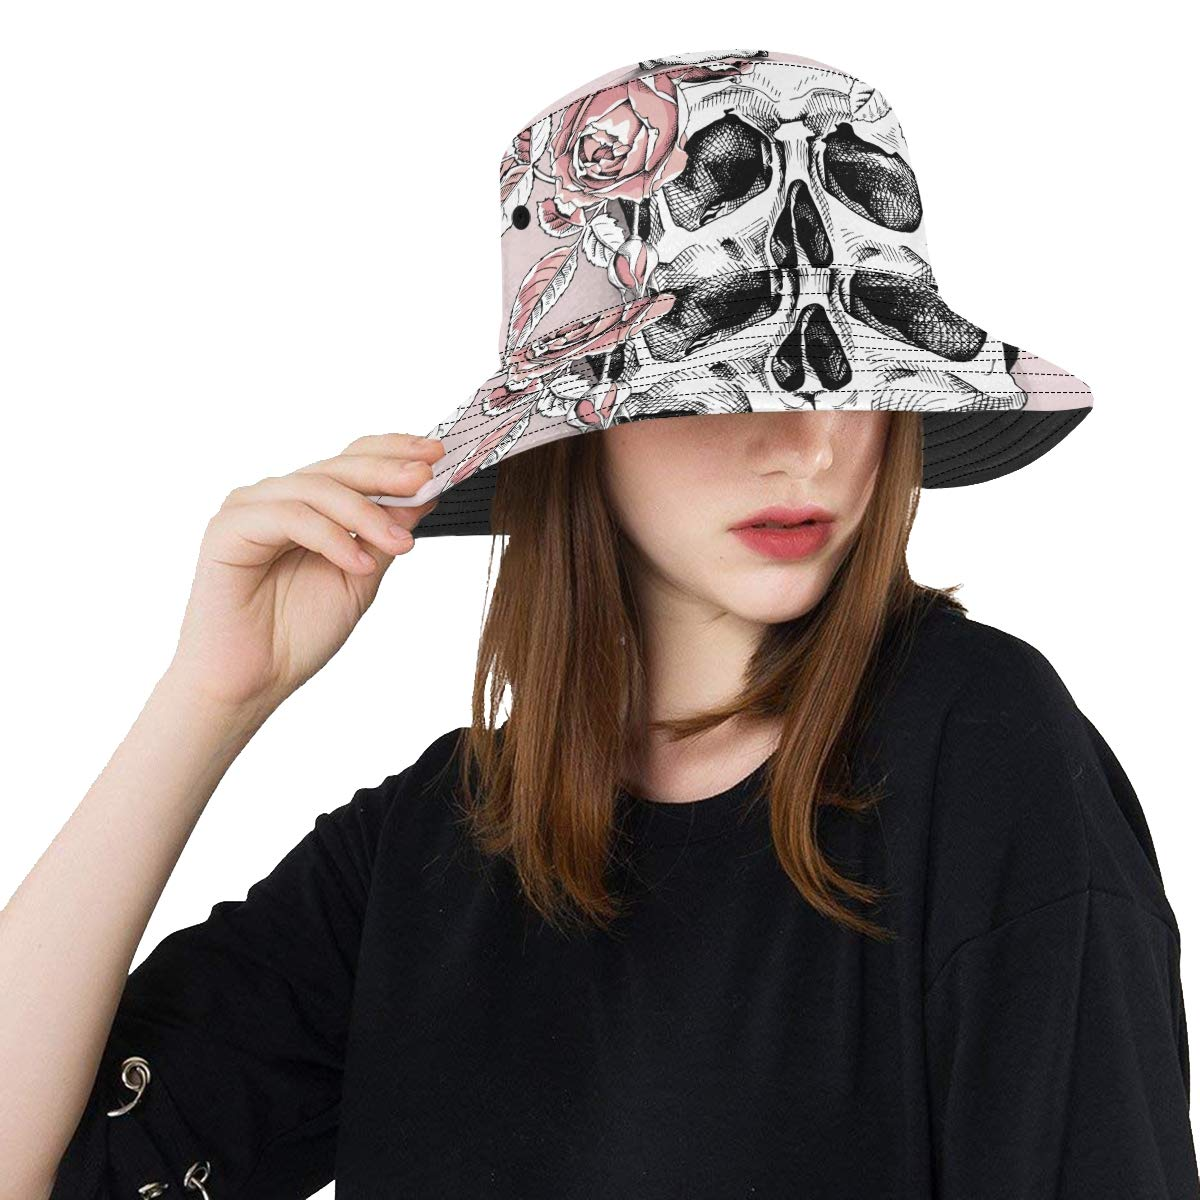 Human Skull Flower Wreath New Summer Unisex Cotton Fashion Fishing Sun Bucket Hats for Kid Teens Women and Men with Customize Top Packable Fisherman Cap for Outdoor Travel